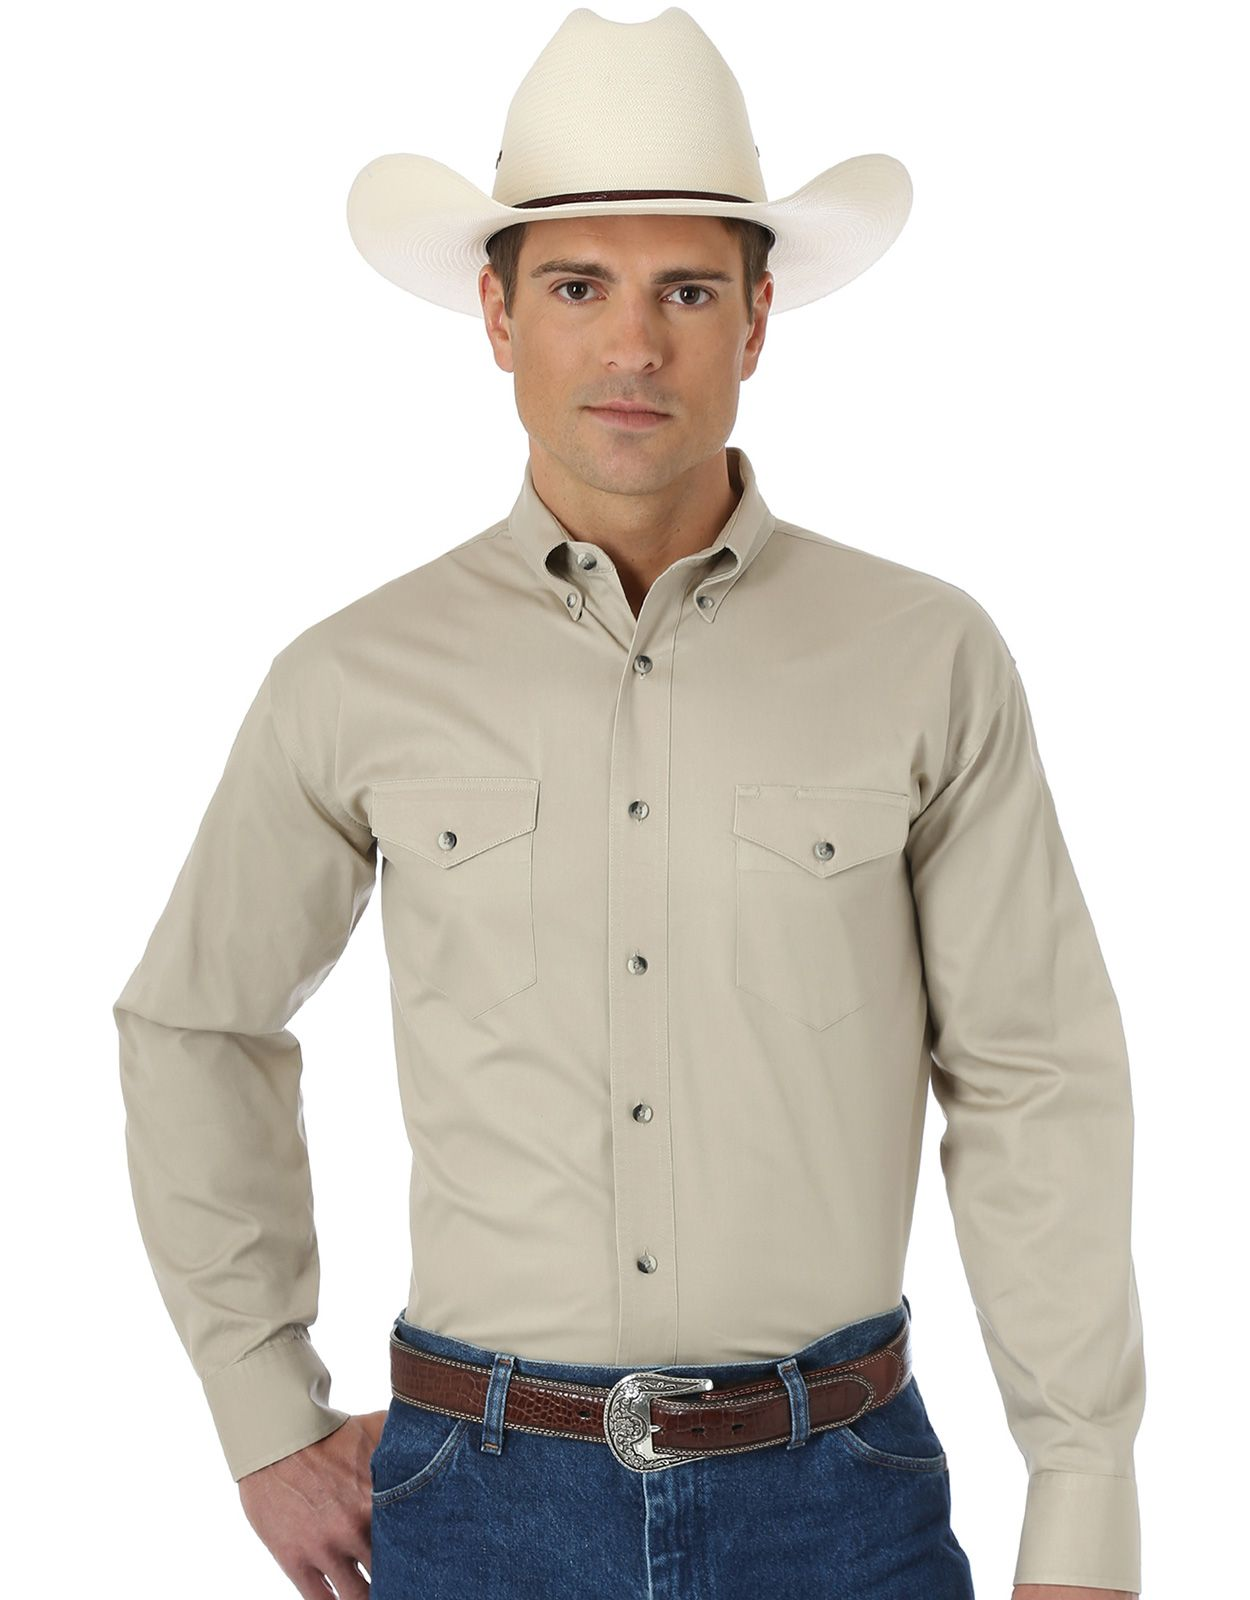 Wrangler Men's Classic Fit Painted Desert Long Sleeve Solid Button Down Shirt - Tan